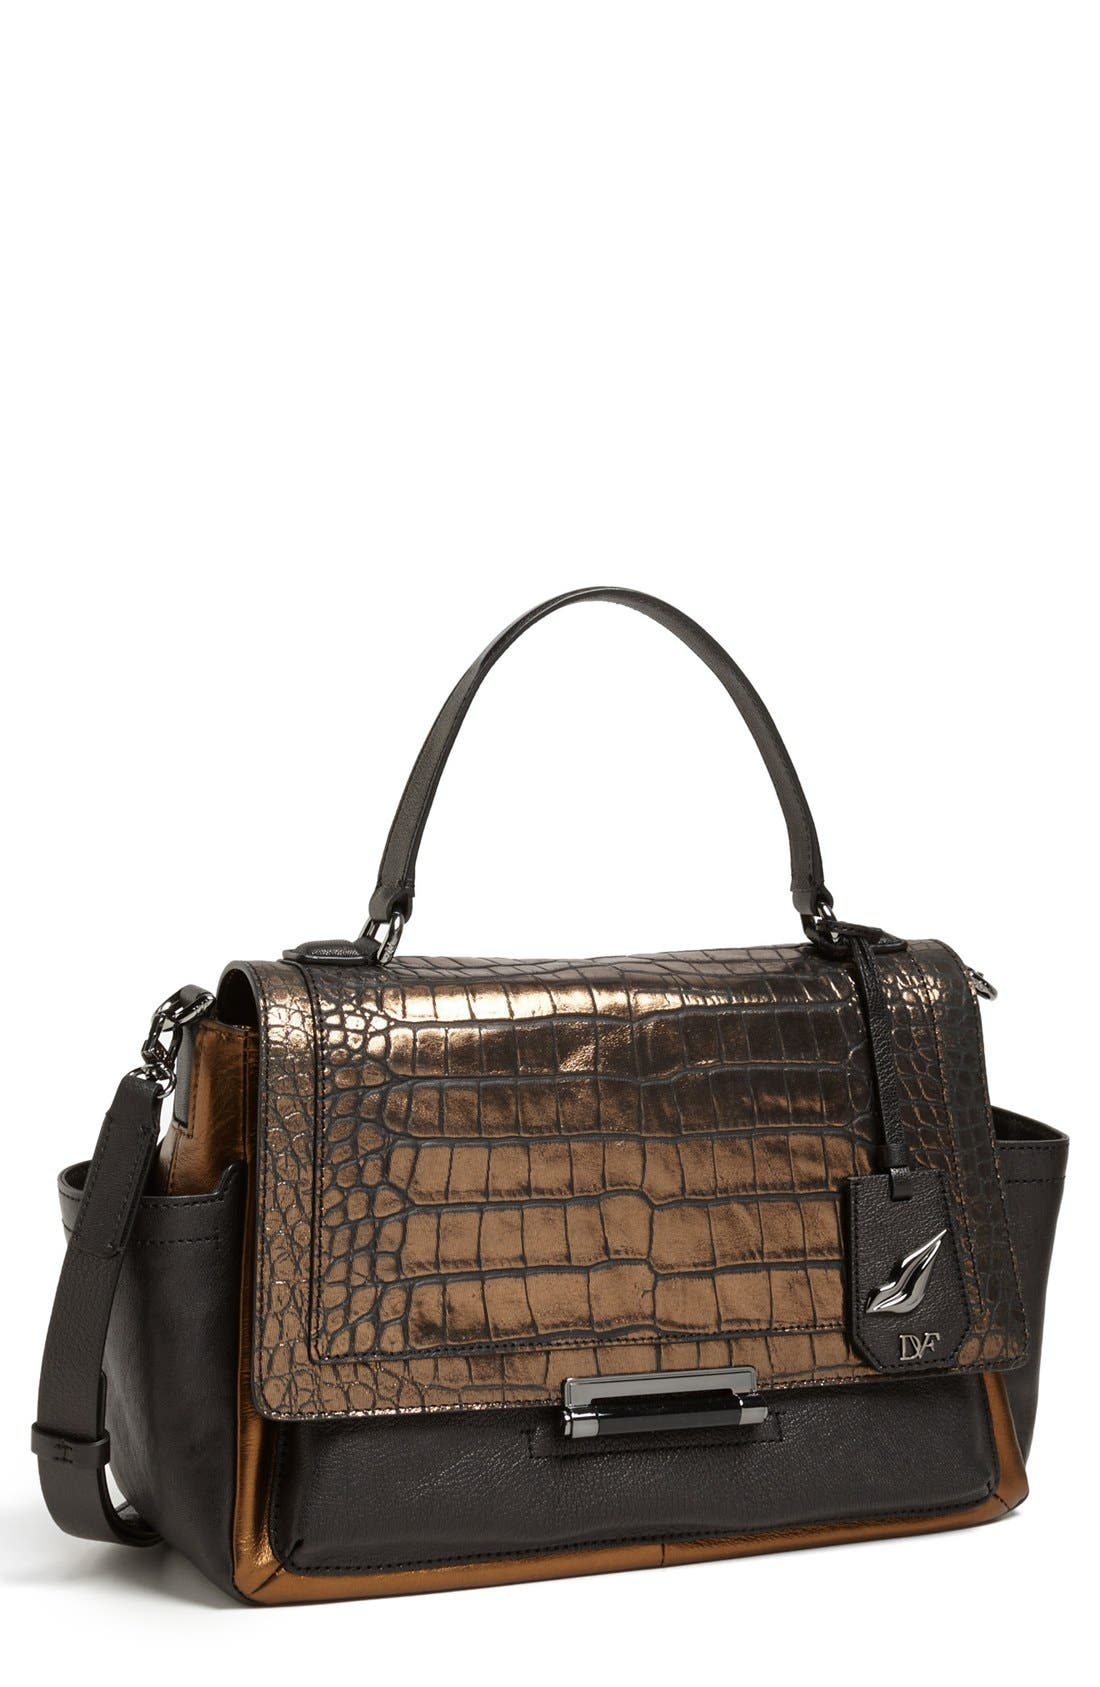 Main Image - Diane von Furstenberg 'Highline Courier' Leather Satchel